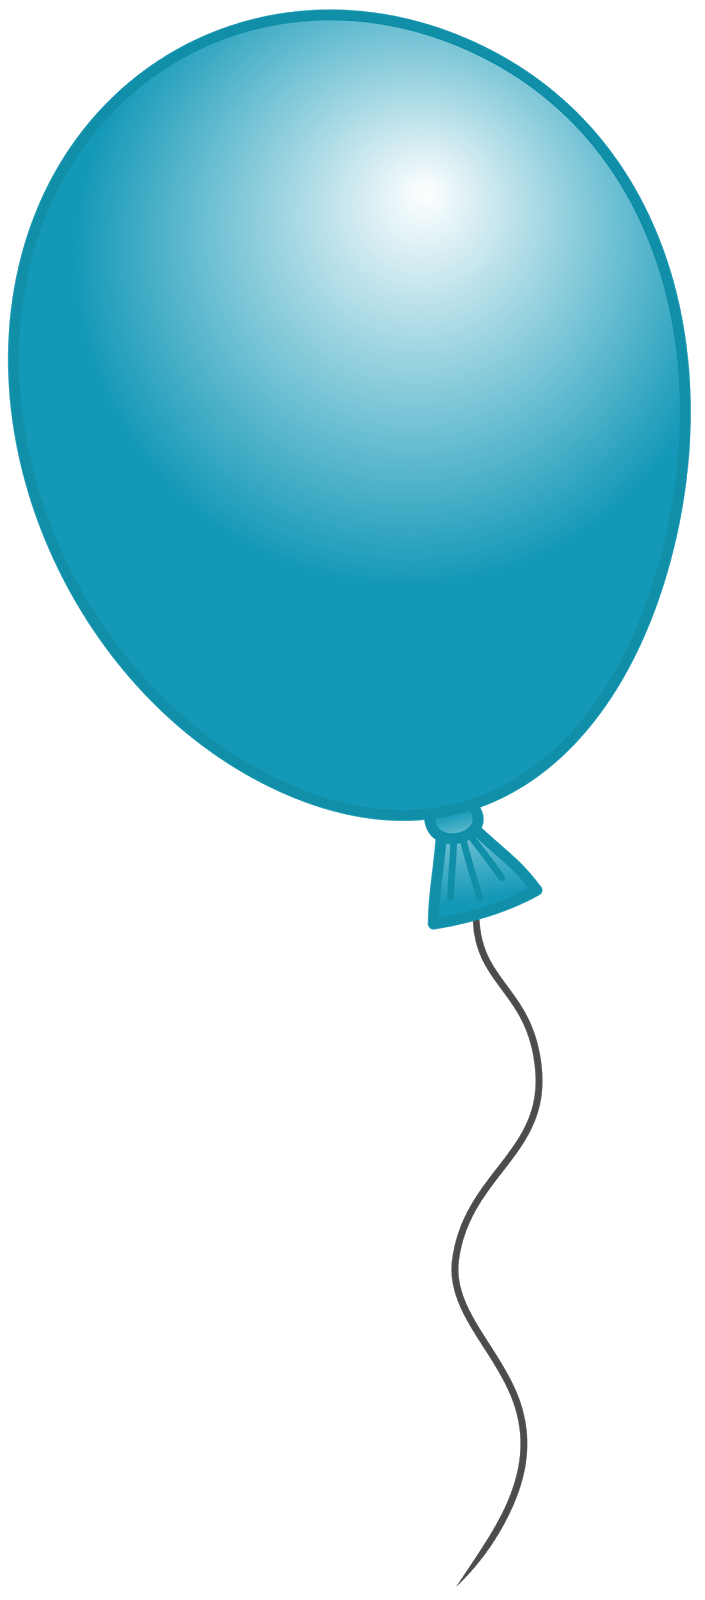 hight resolution of balloon clipart free graphics of colorful party balloons image